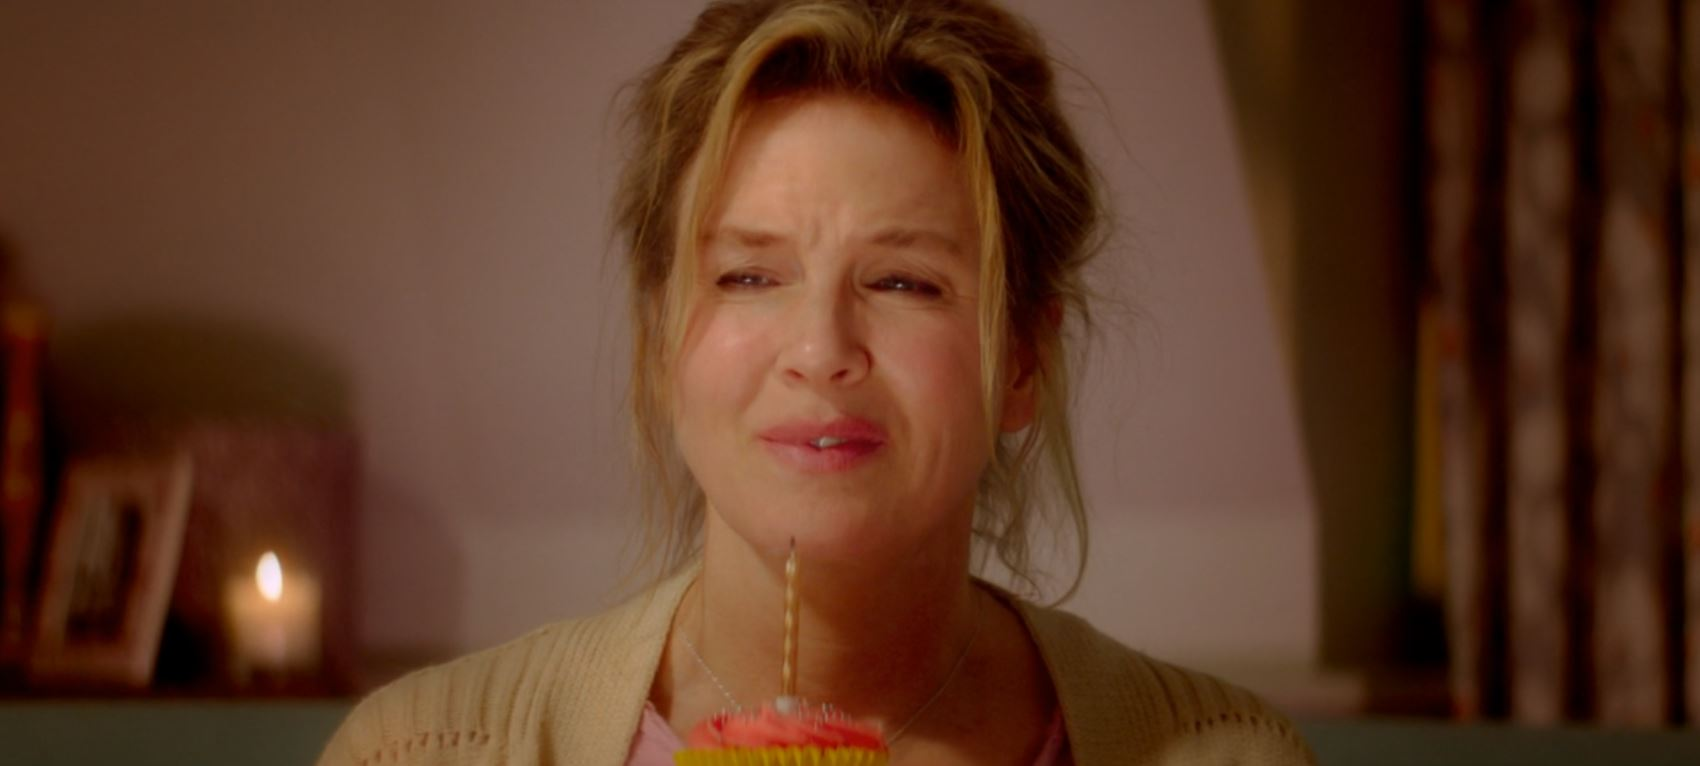 The first full trailer for Bridget Jones's Baby has dropped – and don't worry, it's going to be as good as the first two